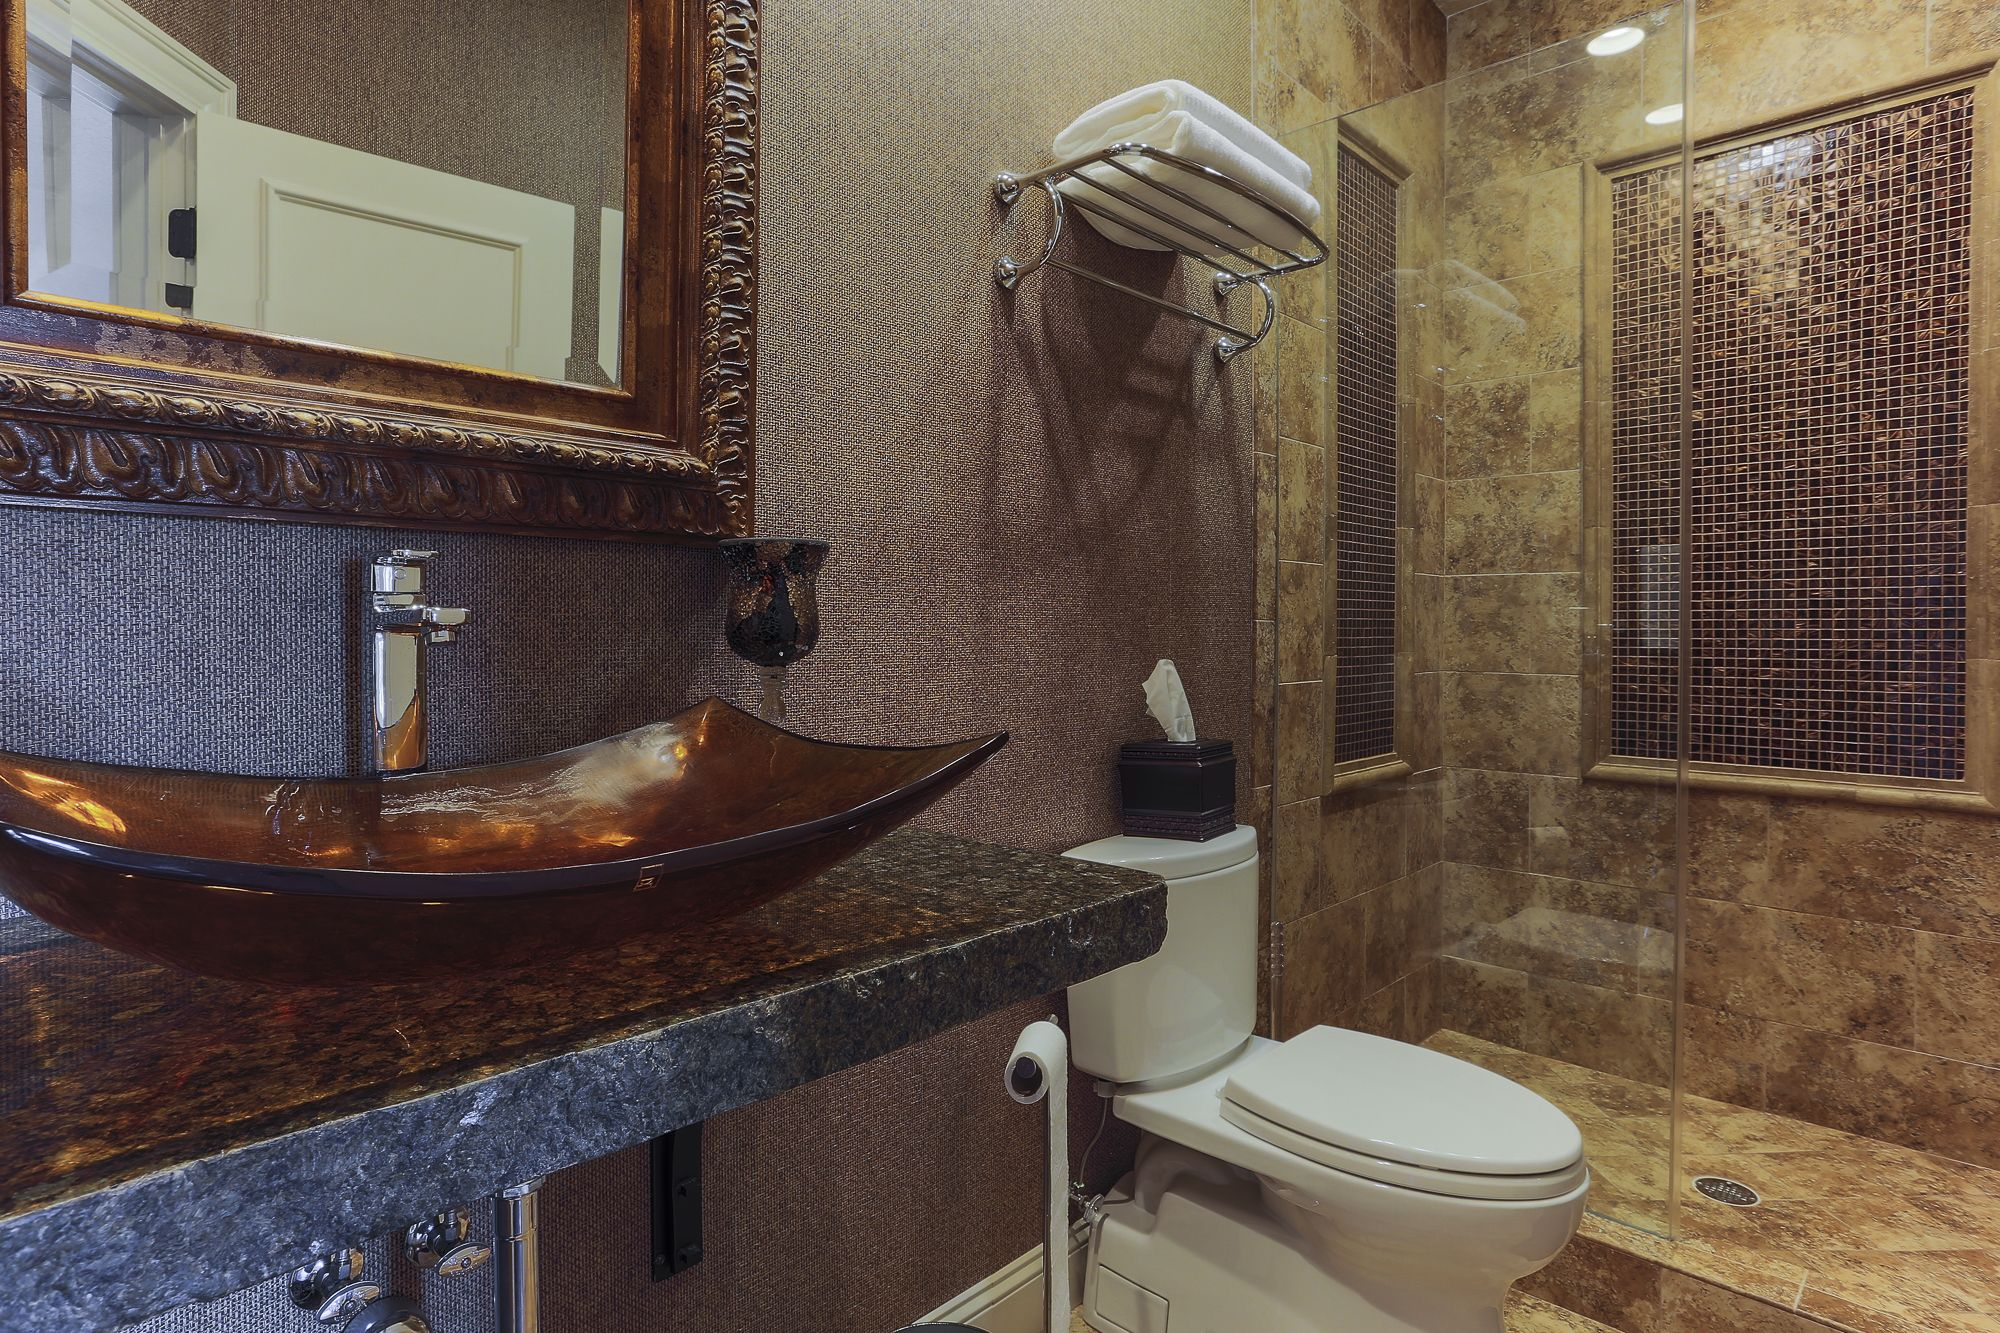 Pin by Quality Flooring by Frank Milea on Bathrooms | Pinterest ...